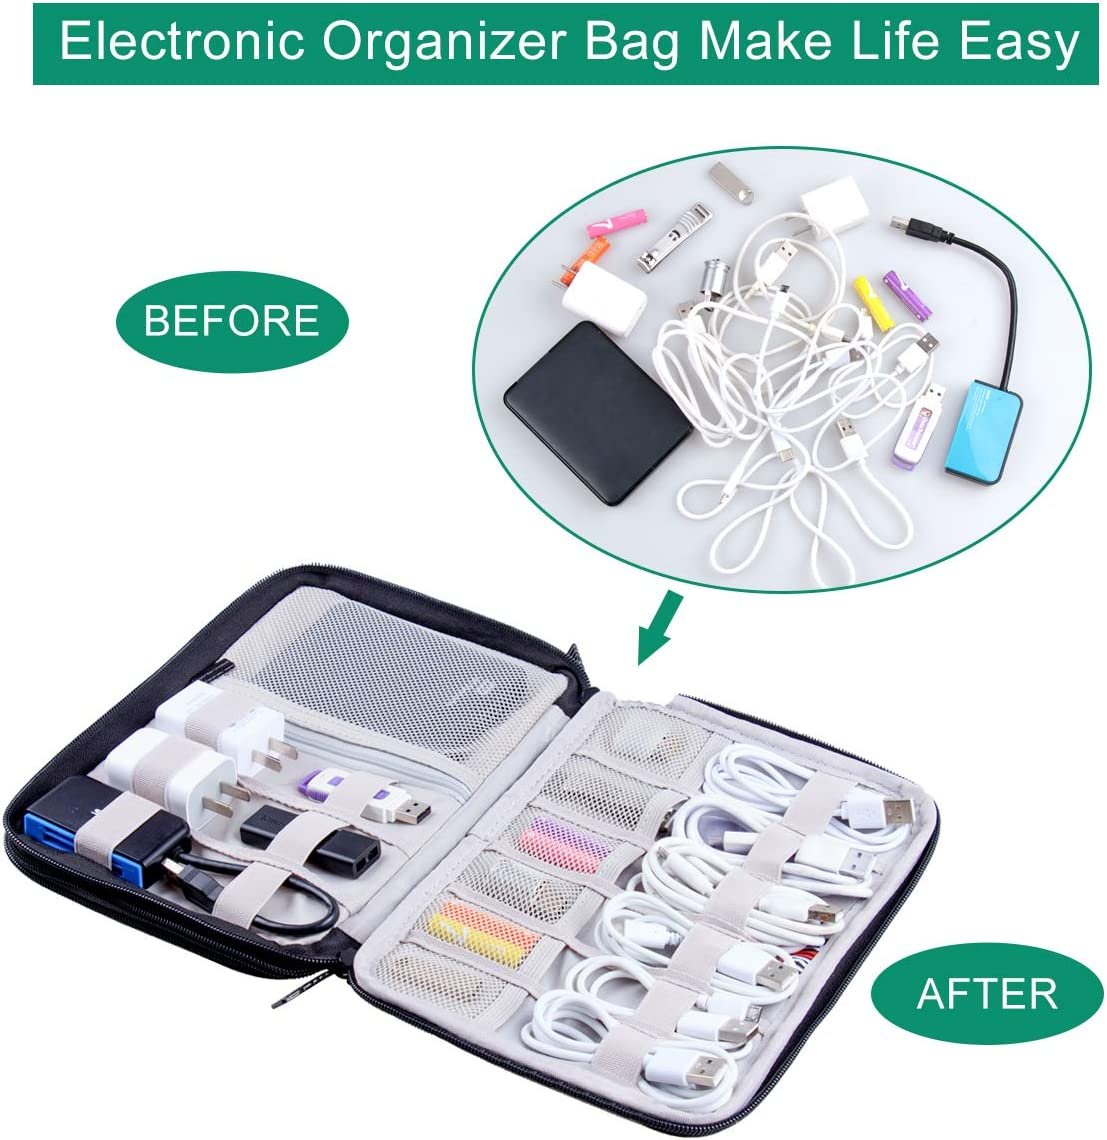 Electronics Organizer Hard Drives- Including 5 Pcs Reusable Fastening Cable Ties Cable Cord Travel Cable Storage Bag Electronic Gadgets Accessories Case for Charging Cable Cell Phone